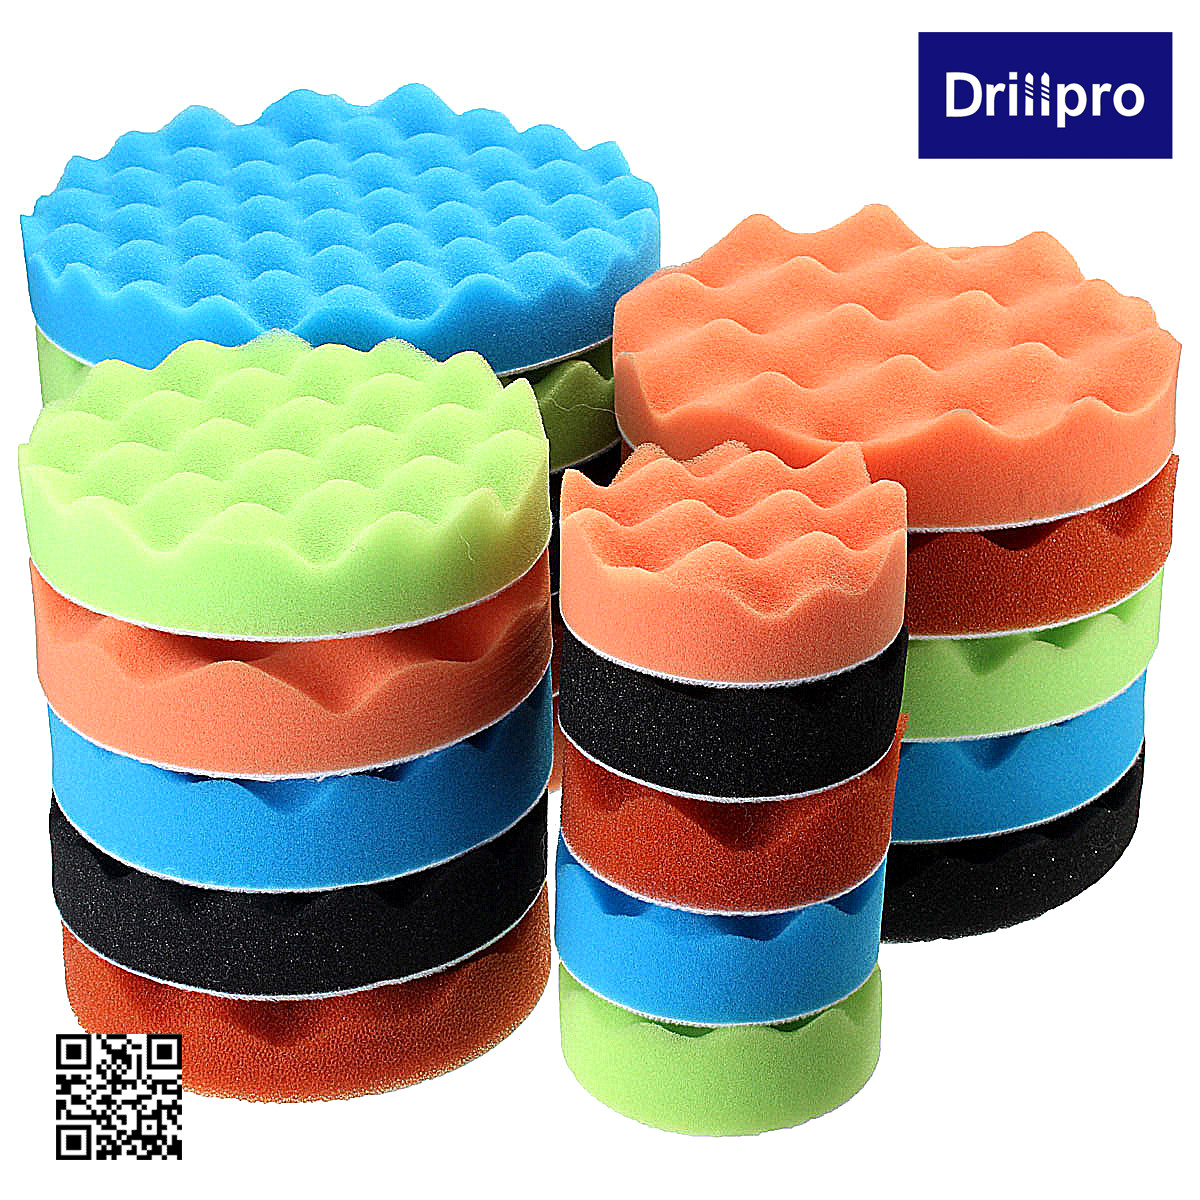 "Drillpro 7Pcs/set Auto Car Compound Polishing Waxing Buffing Sponge Pads Kit with 5/8'' Drill Adapter, 3""/5""/6""/7"" Inch"